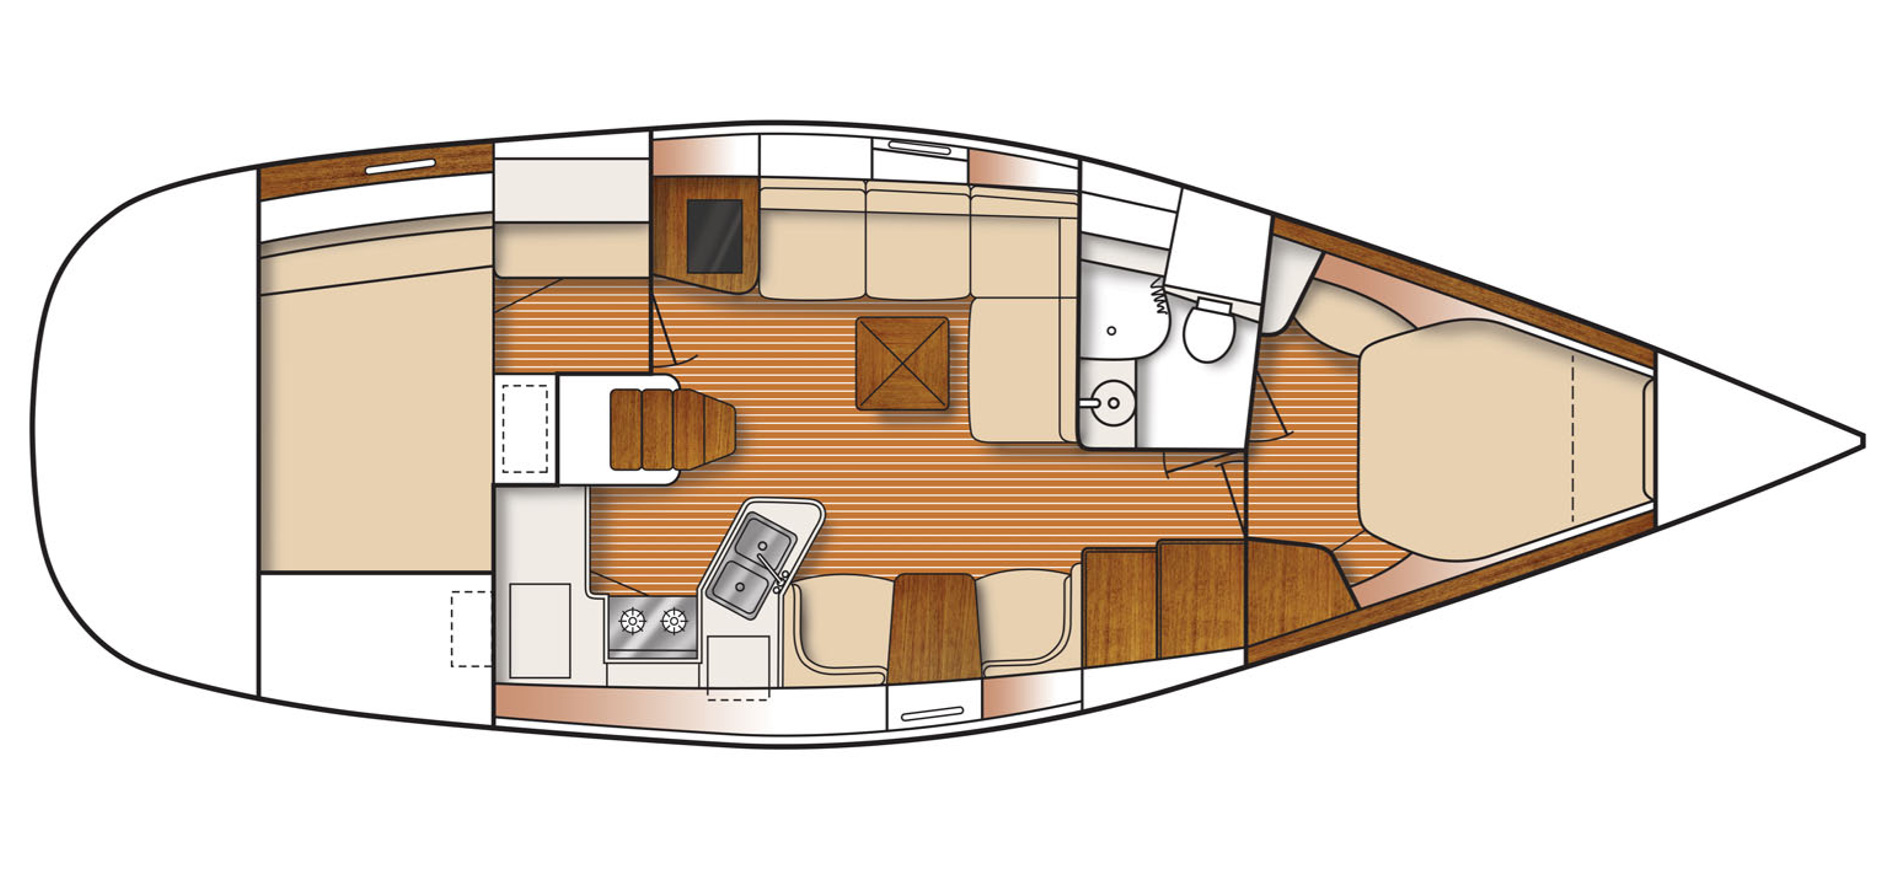 Catalina 385 - 385_layout.jpg